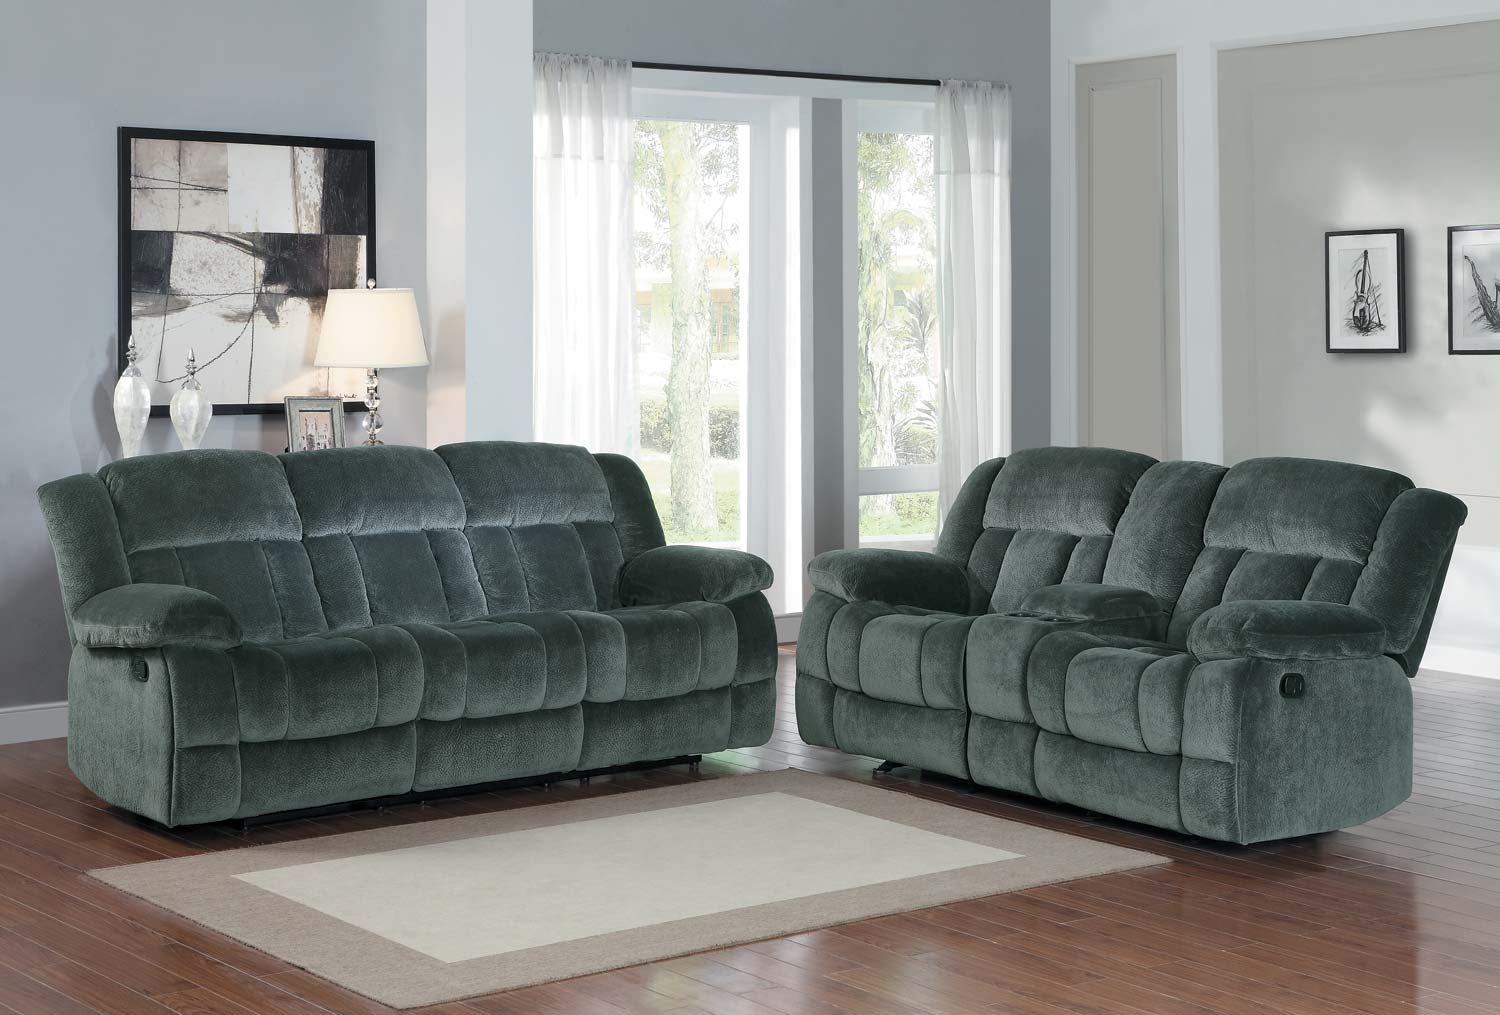 microfiber living room furniture 2pc laurelton reclining sofa set charcoal textured 14726